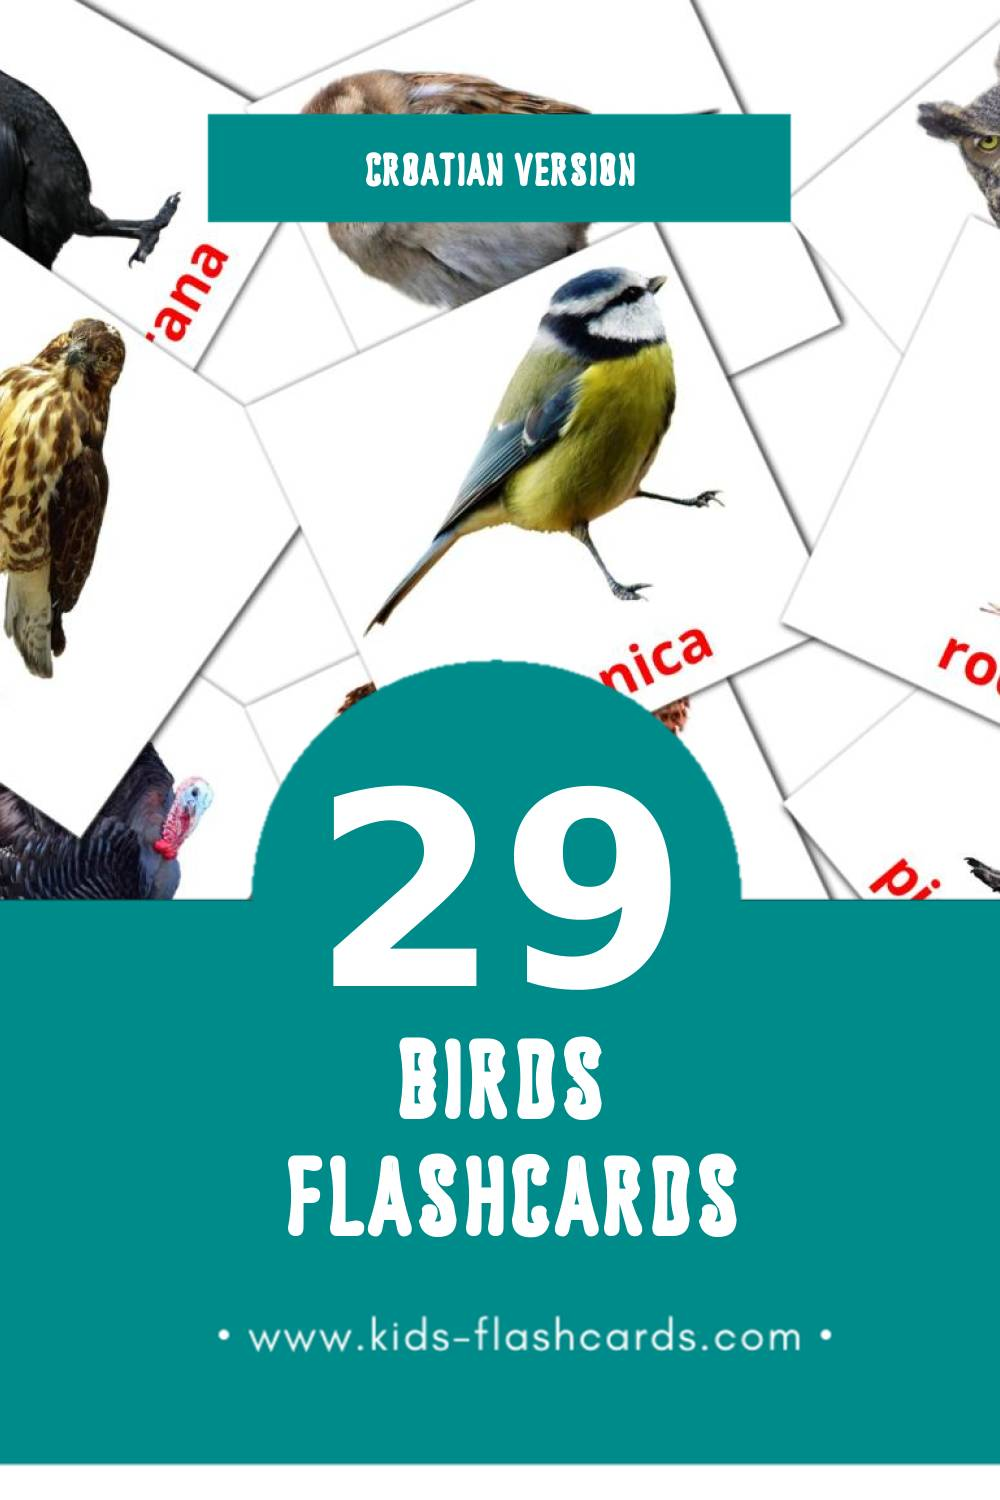 Visual ptice Flashcards for Toddlers (27 cards in Croatian)